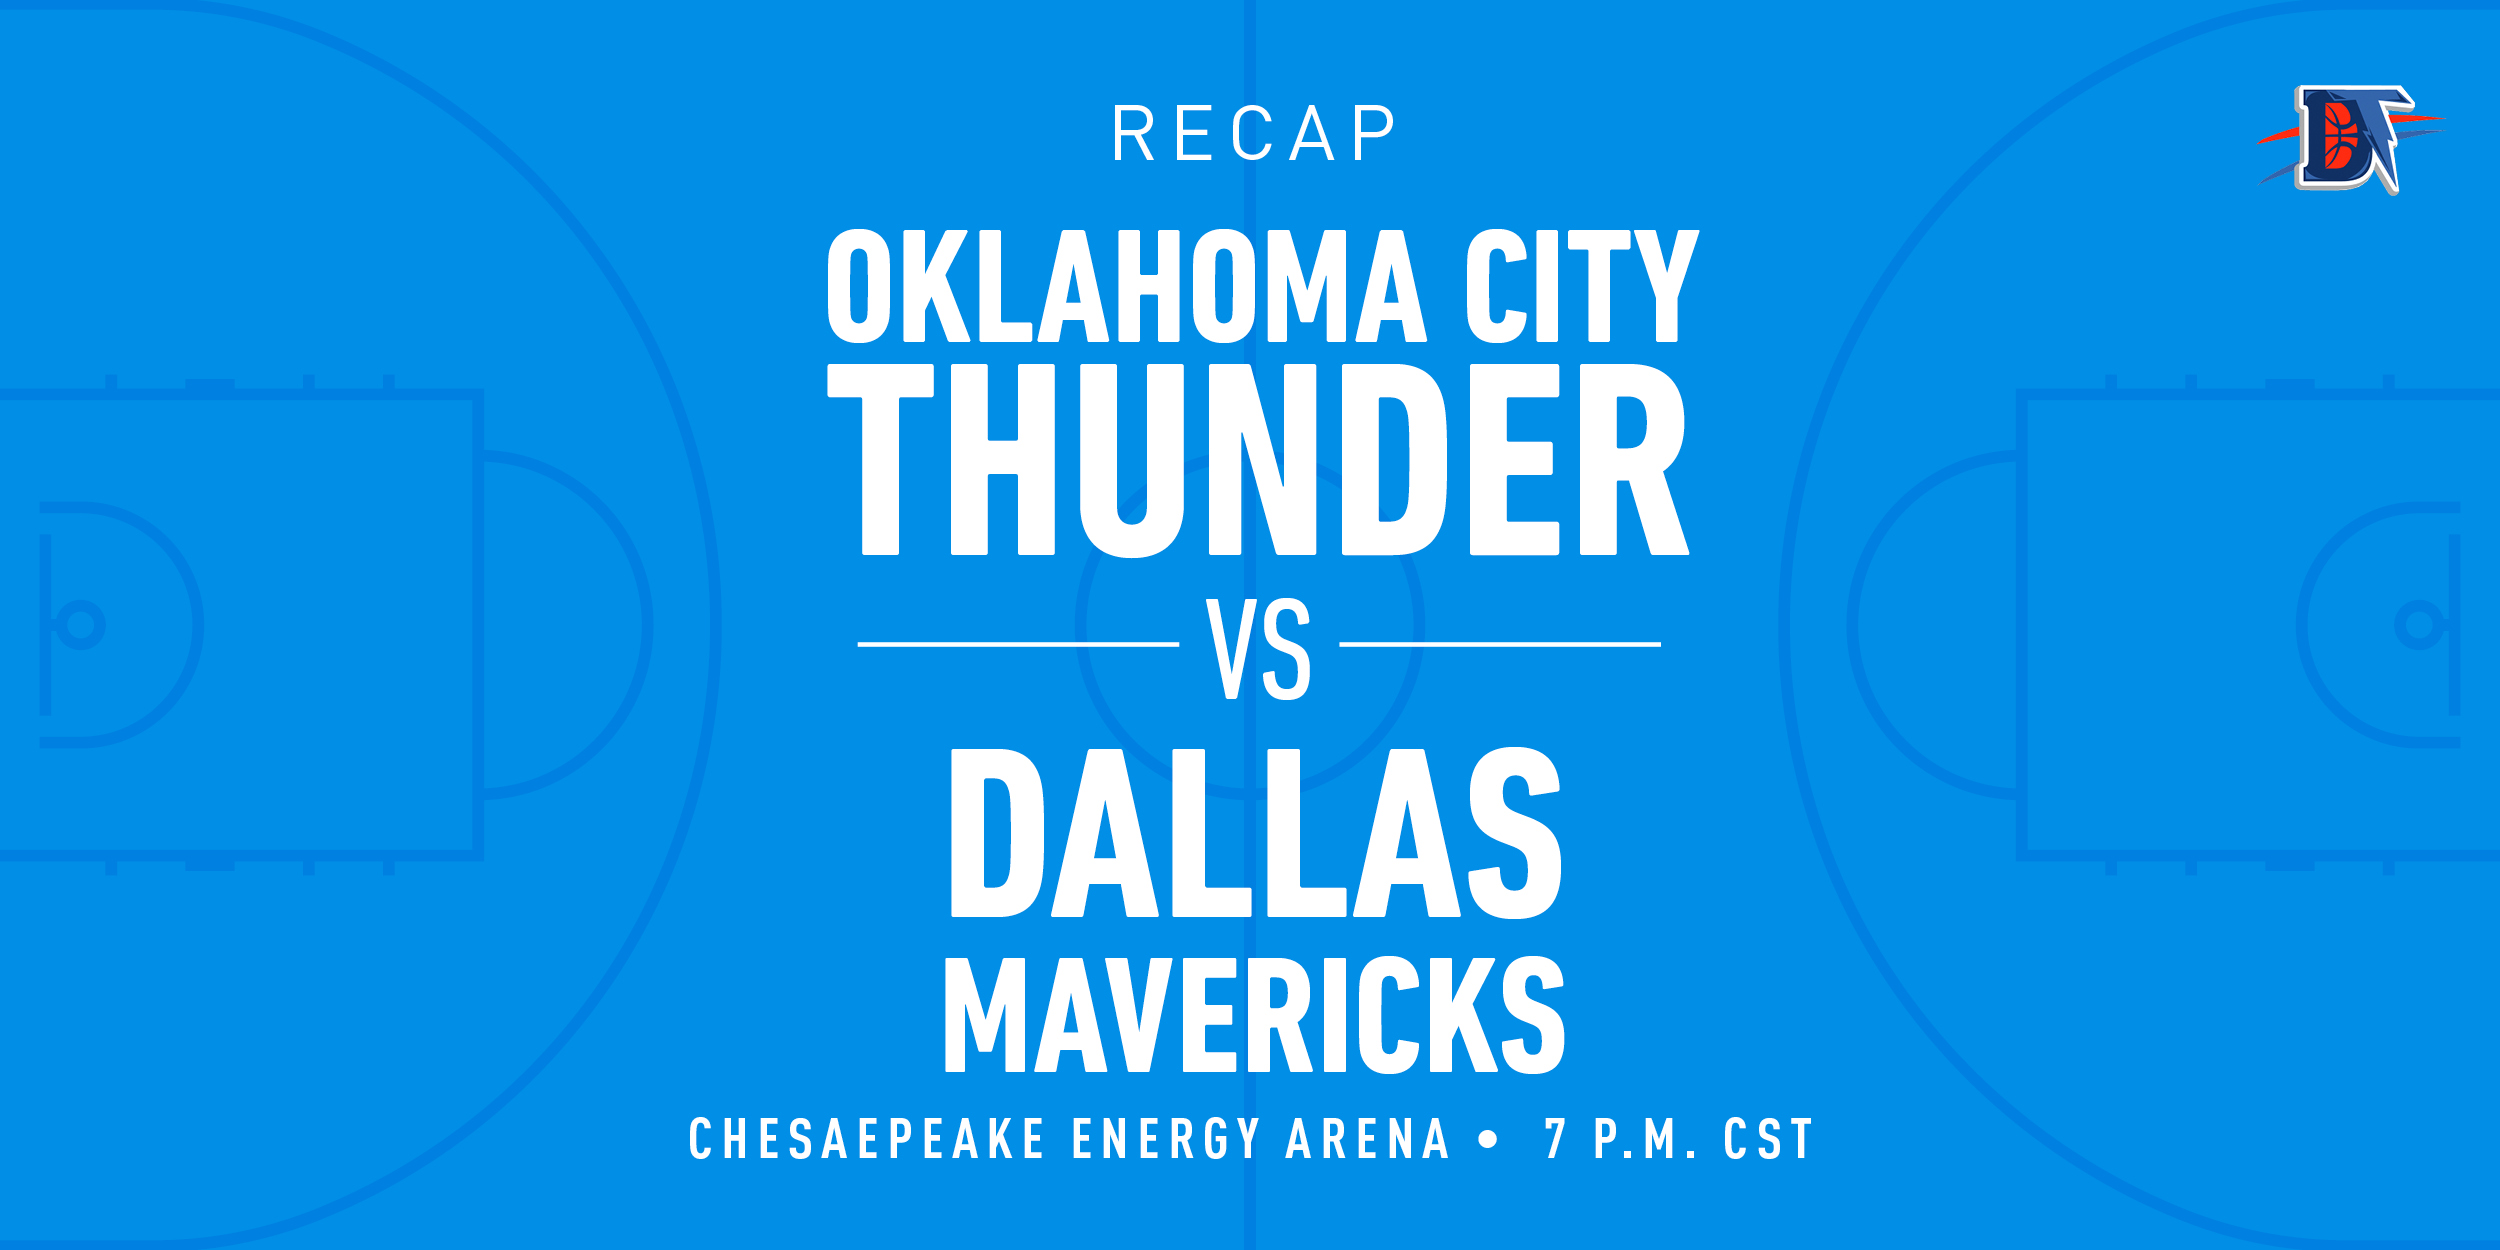 Game 48 Recap: Mavericks (29-17) def. Thunder (28-20) 107-97